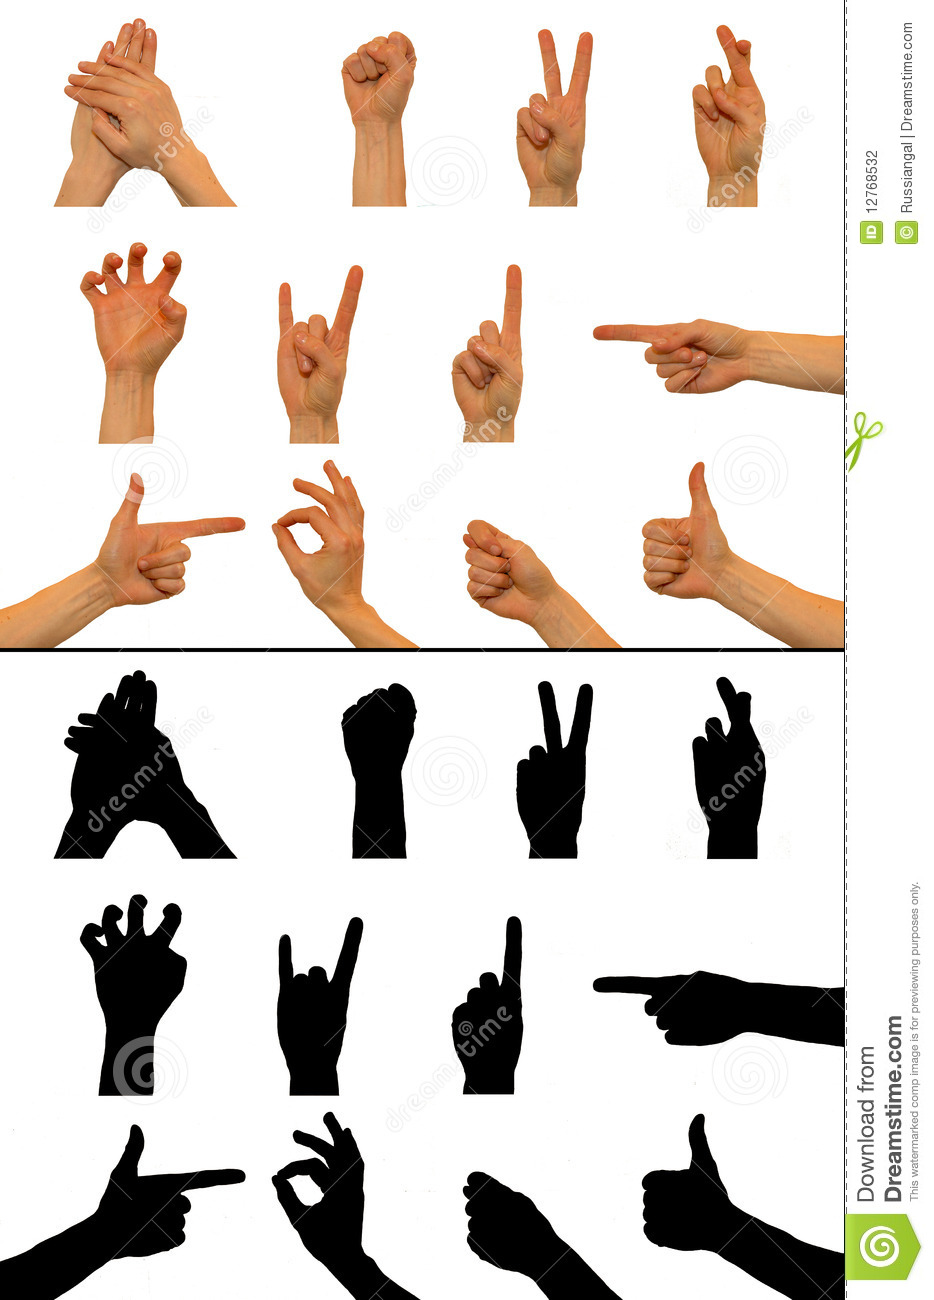 Cool hand symbols and meanings cool hand symbols and meanings photo9 biocorpaavc